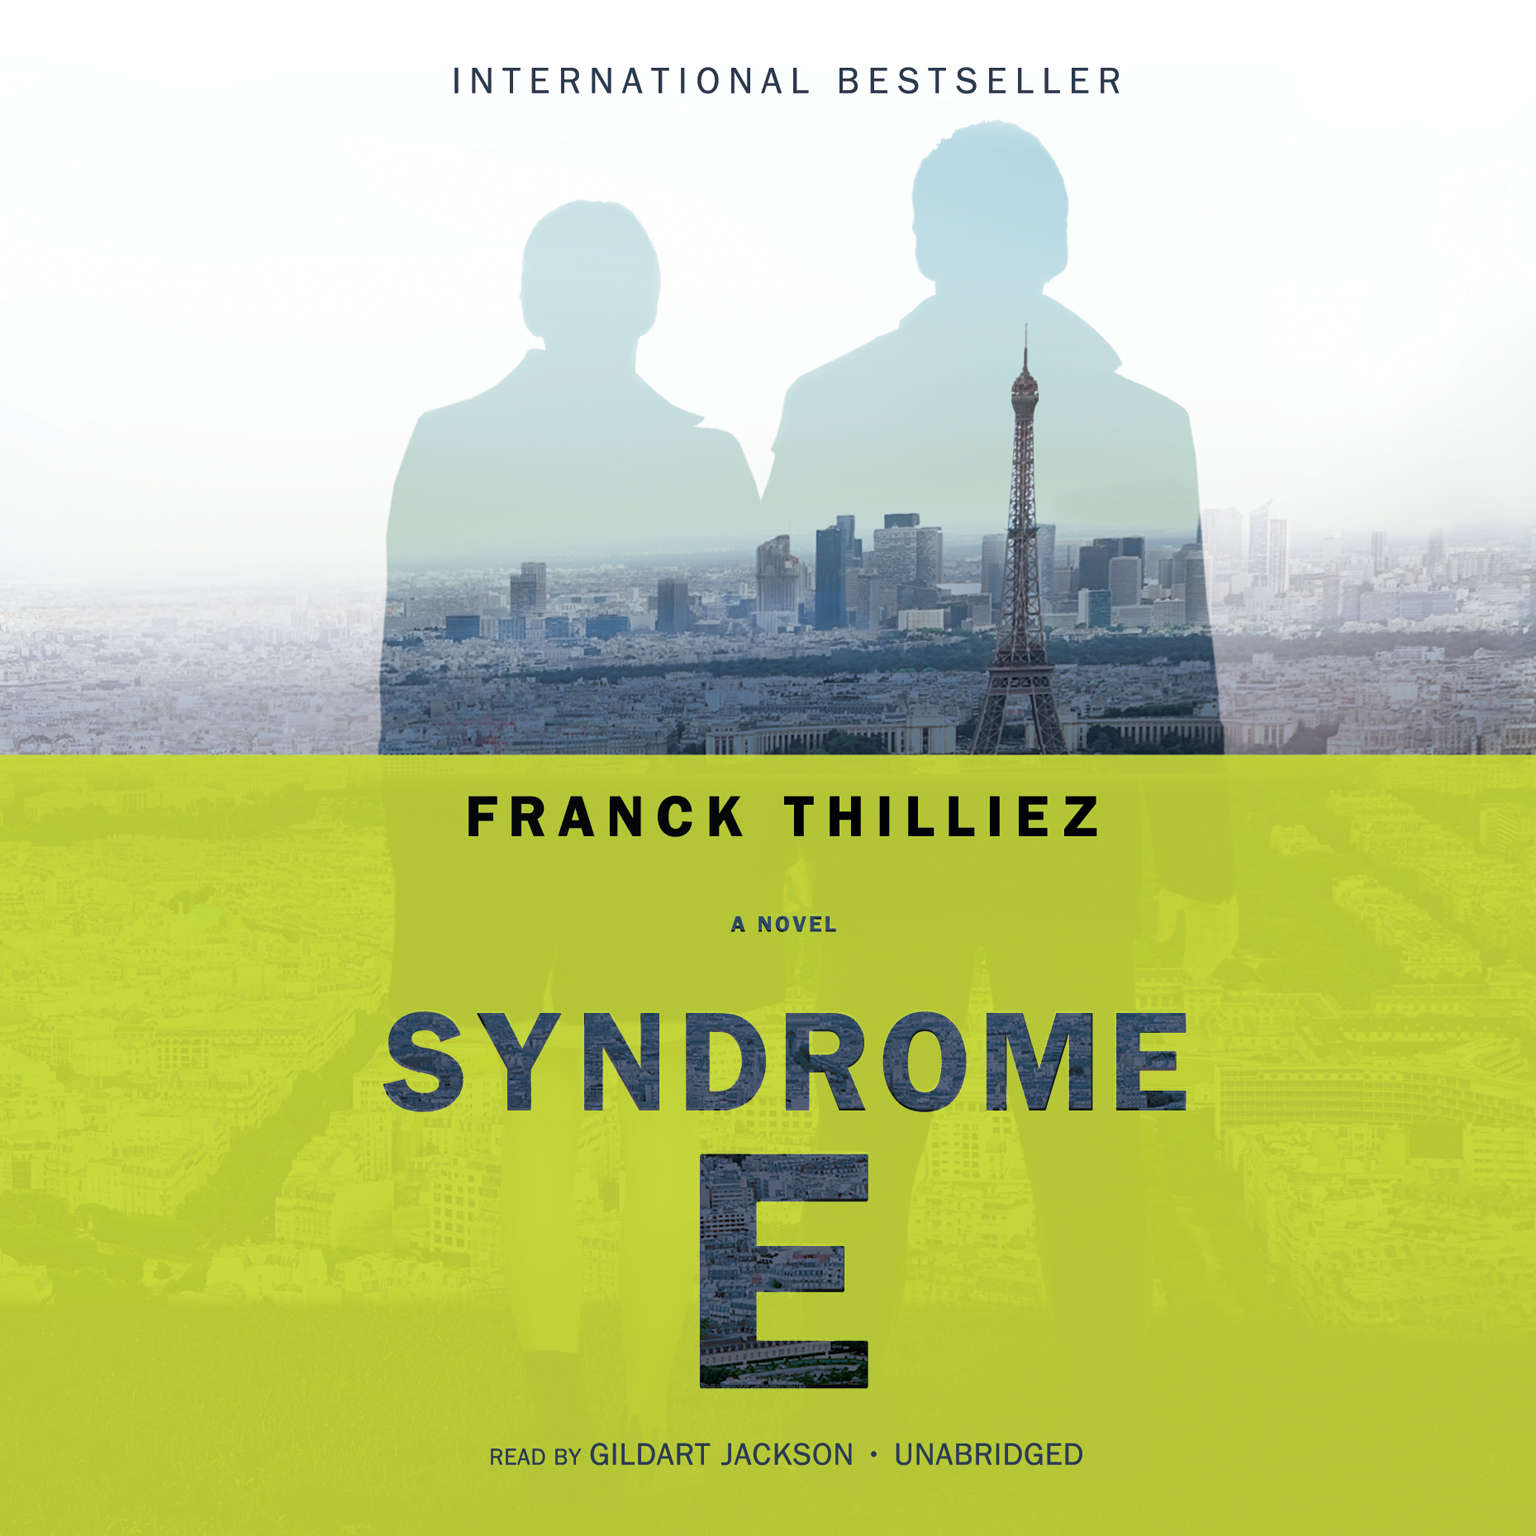 Printable Syndrome E Audiobook Cover Art